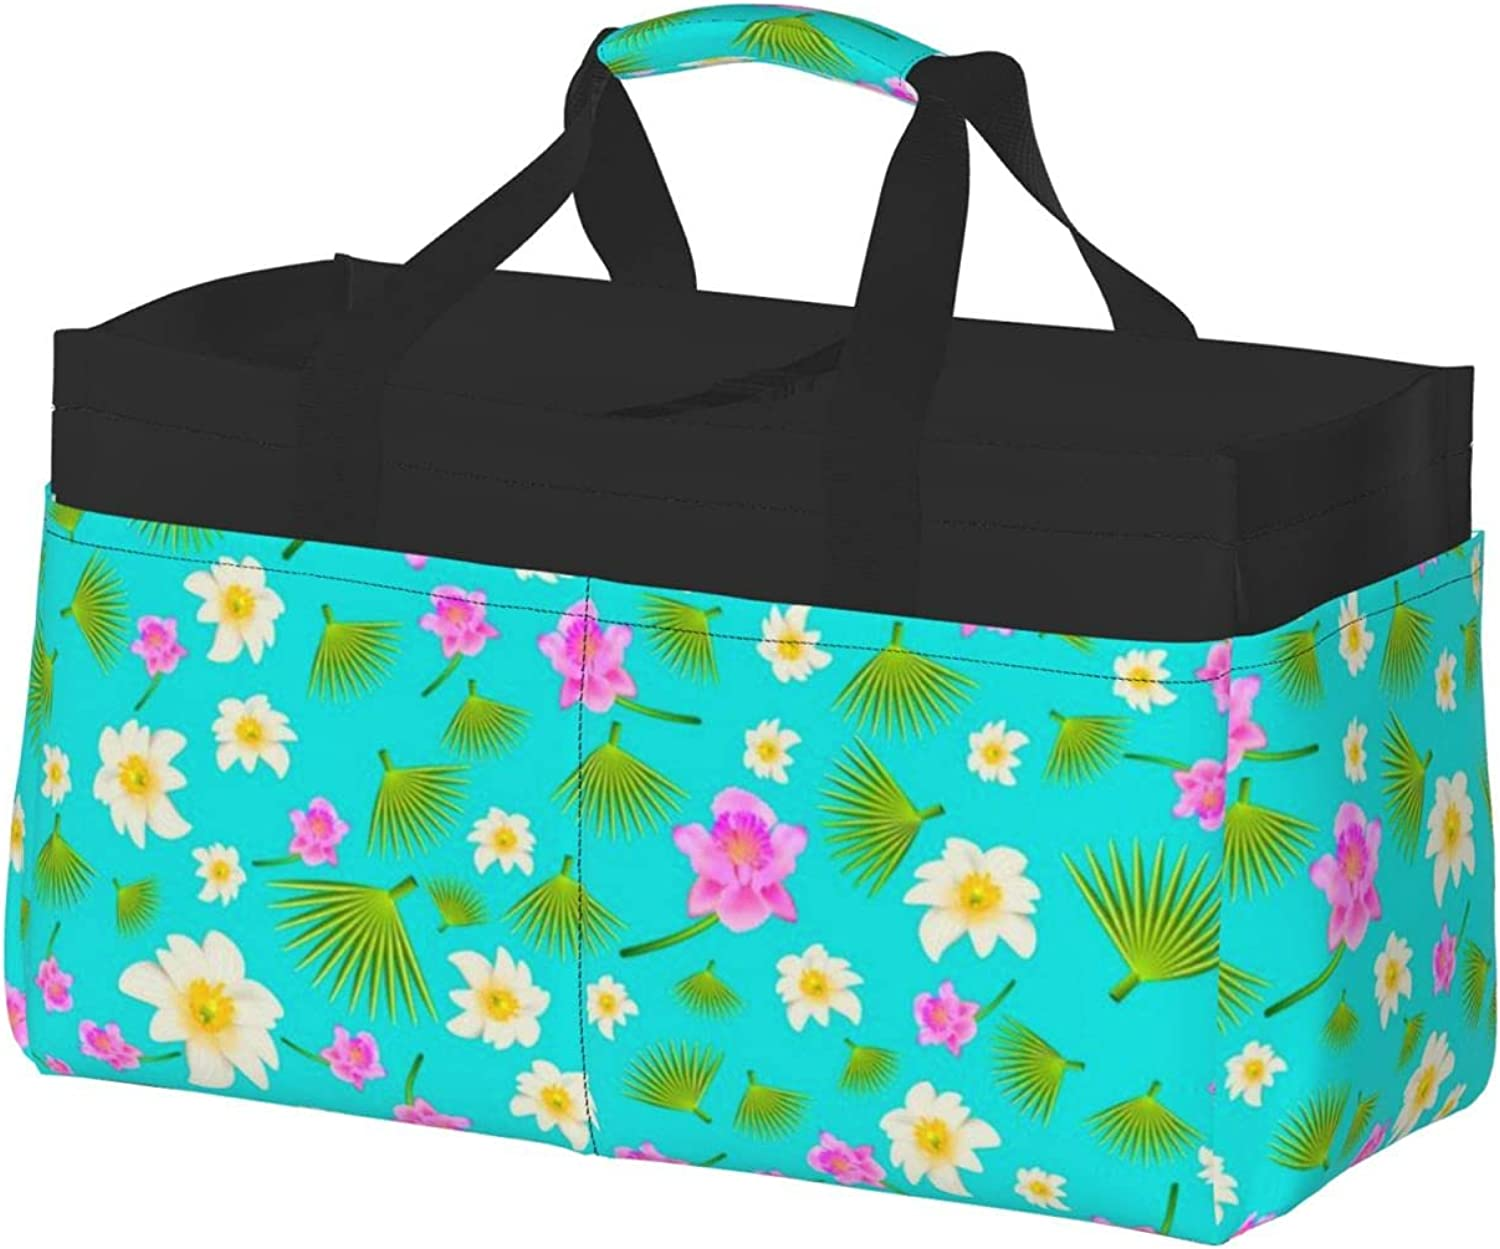 Extra Large Utility Tote Bag - Oversized Reu Beach Canvas Basket Latest item Max 67% OFF